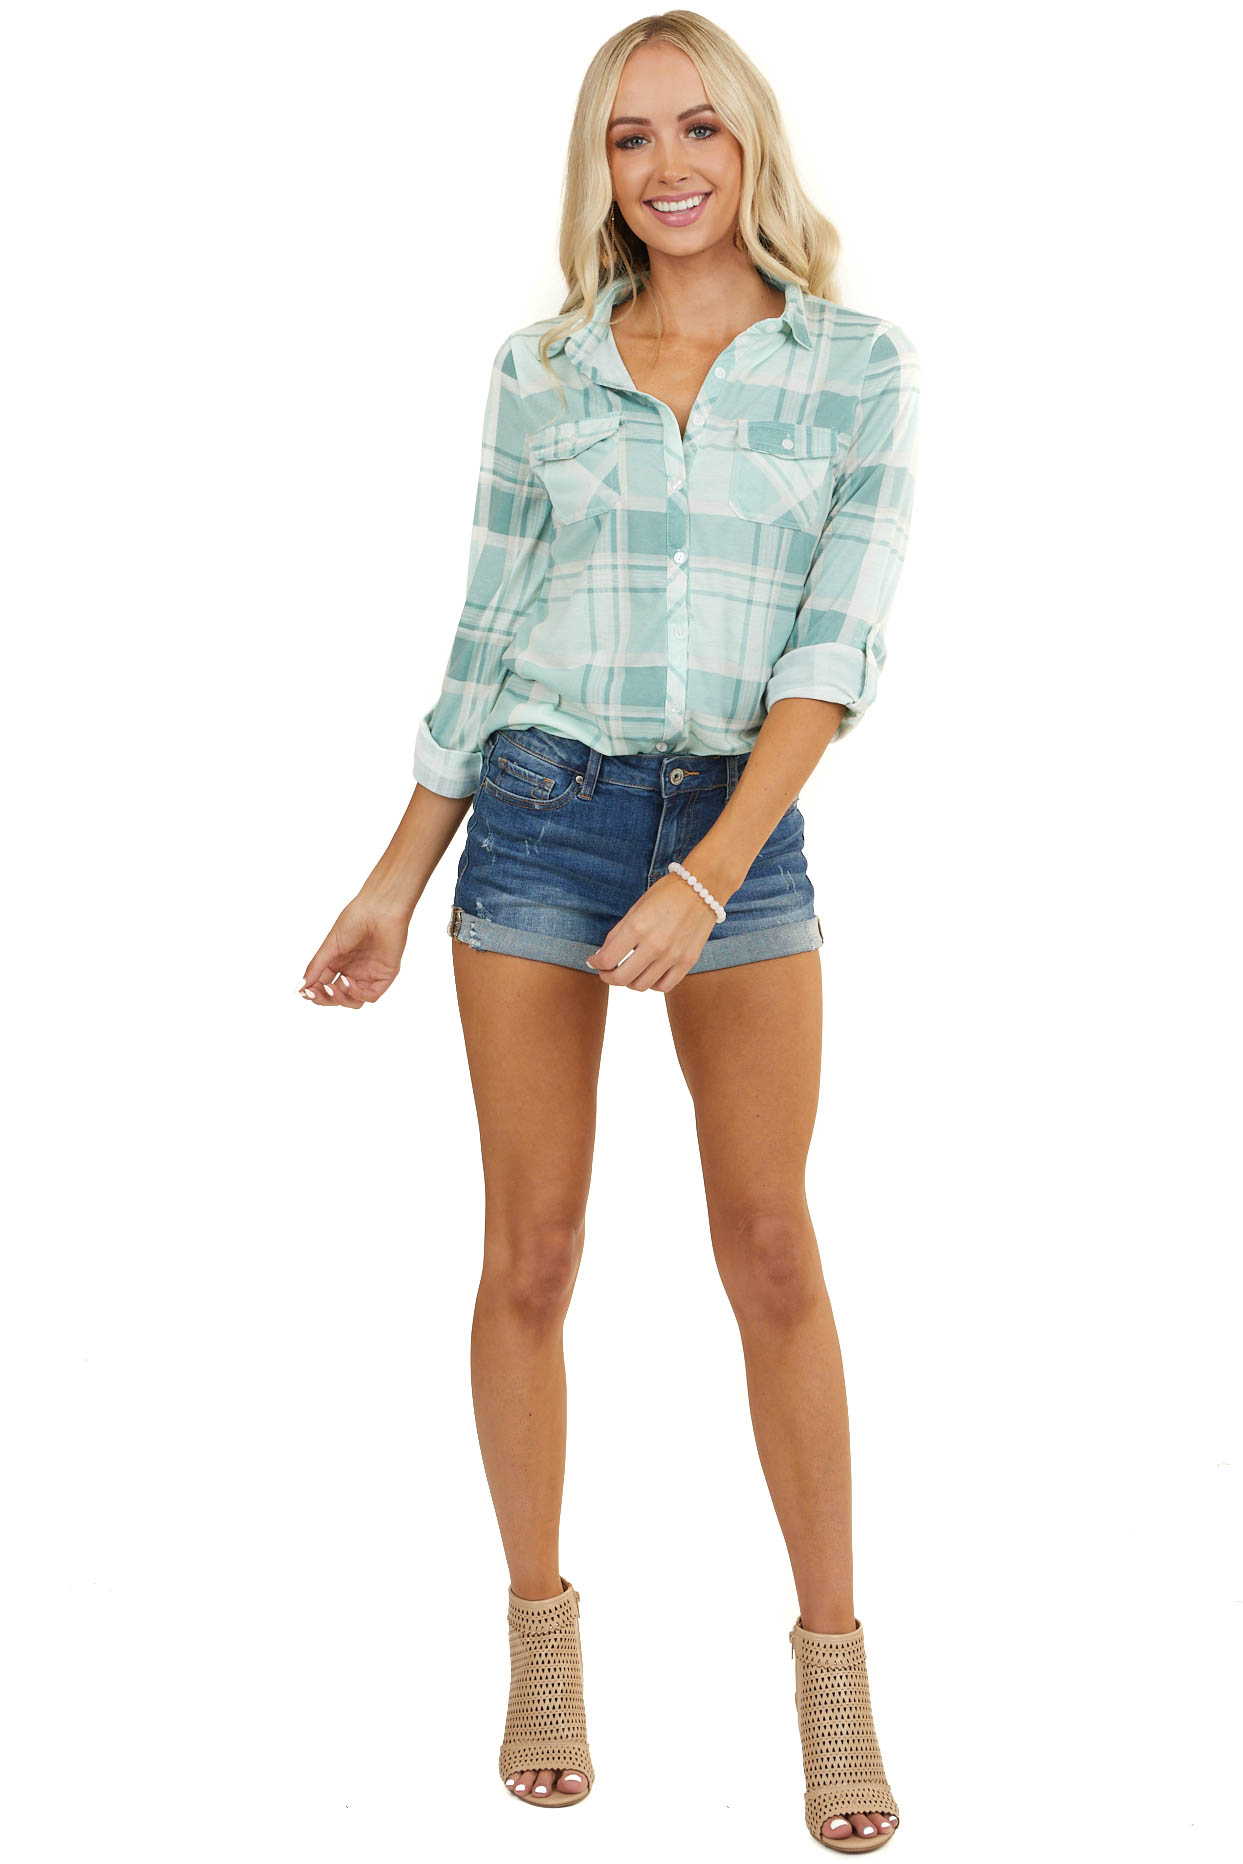 Mint and Aqua Plaid Button Up Top with Chest Pockets